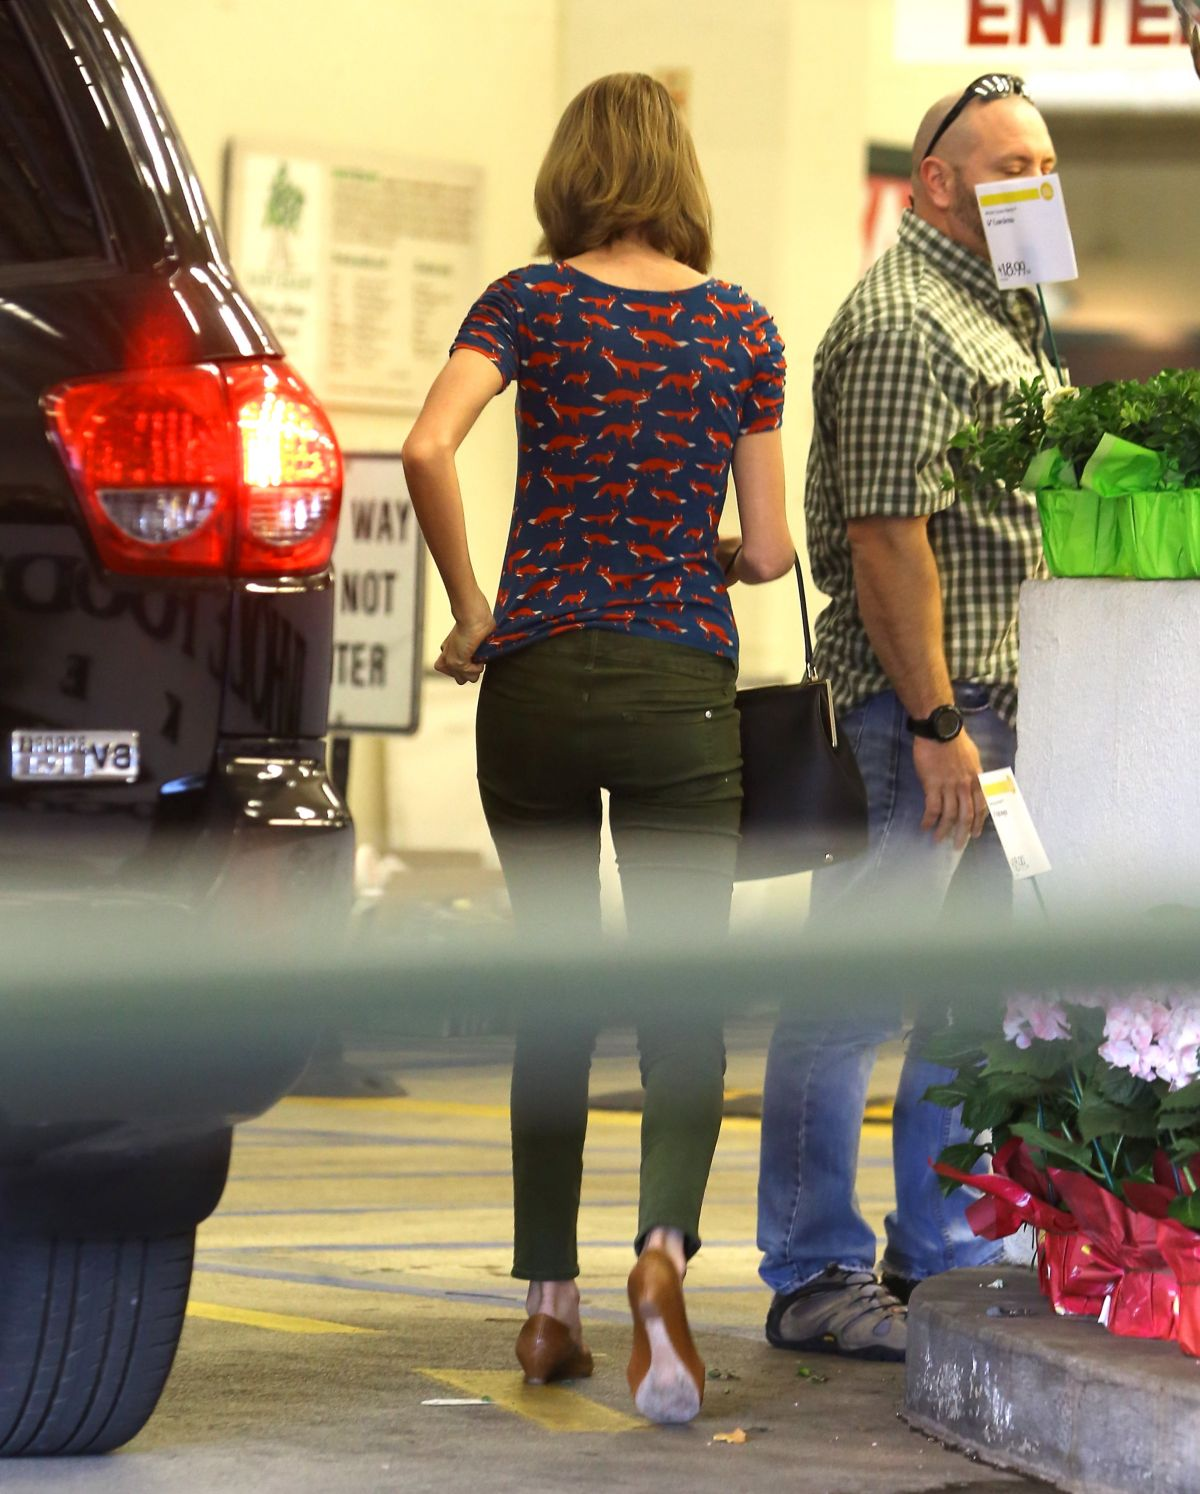 Grocery Stores Los Angeles: TAYLOR SWIFT Shoping Grocery At A Store In Los Angeles